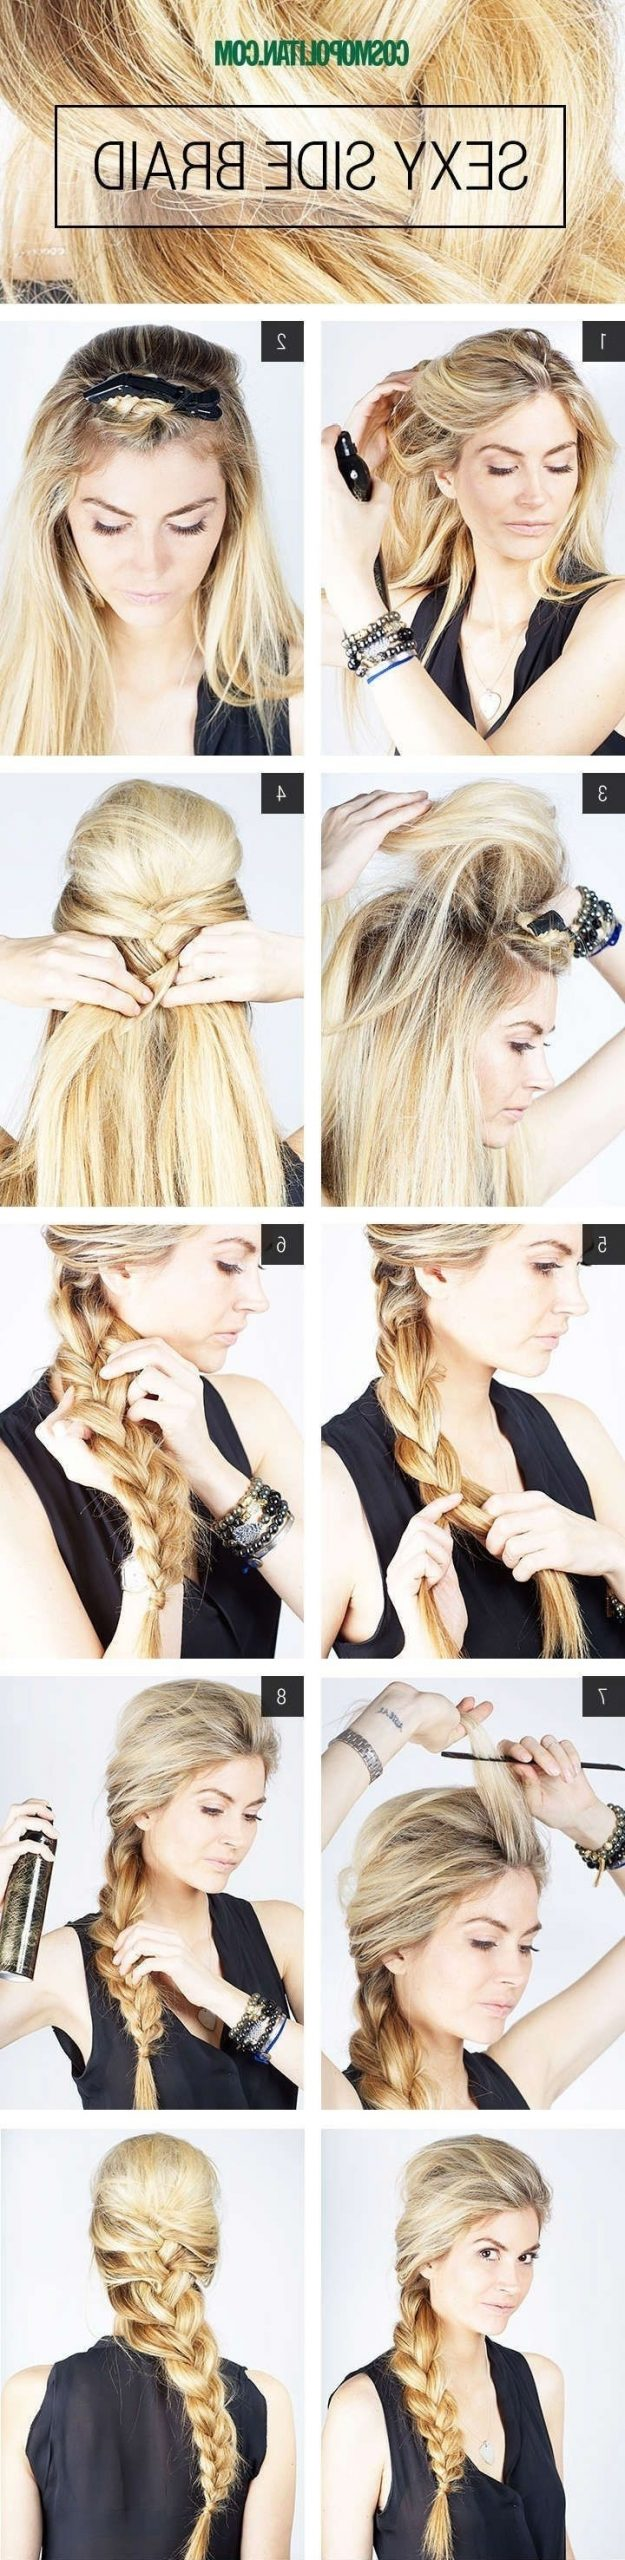 18 Simple Office Hairstyles For Women: You Have To See Tamilnadu Hairstyles For Medium Hair